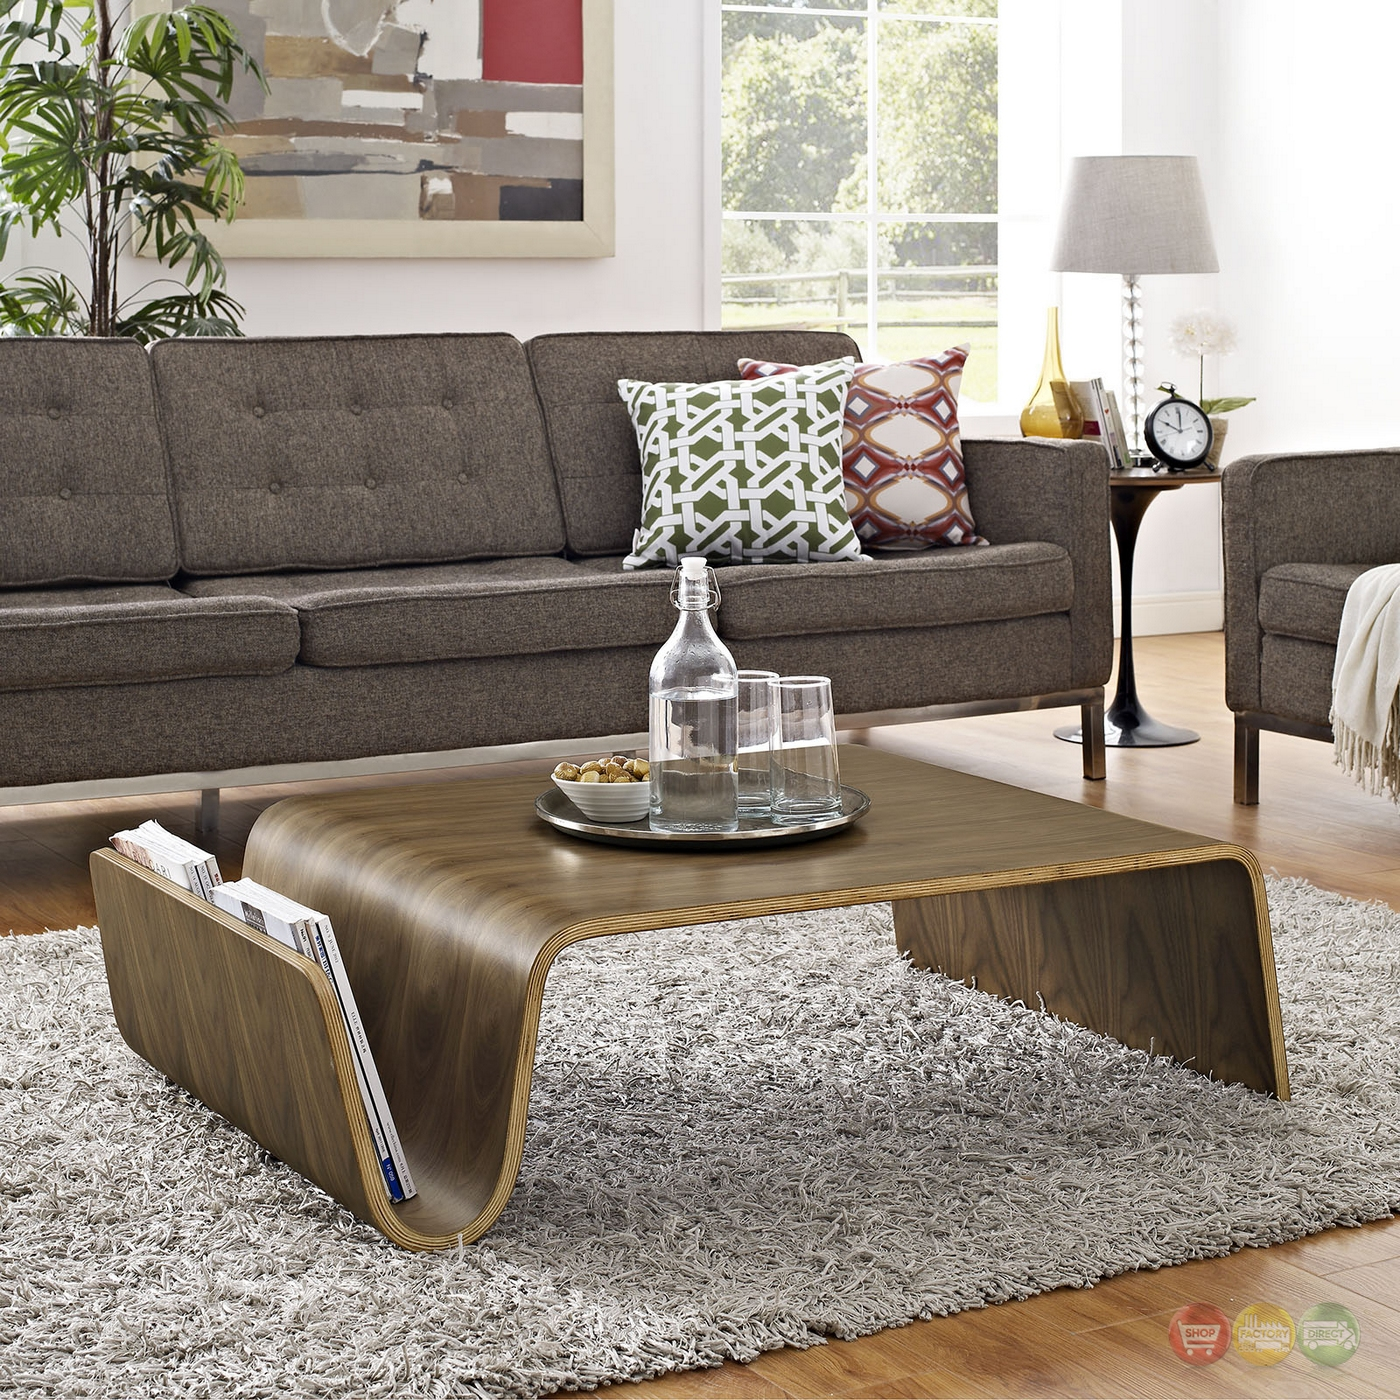 Modern Wood Coffee Table: Polaris Contemporary Wood Coffee Table With Magazine